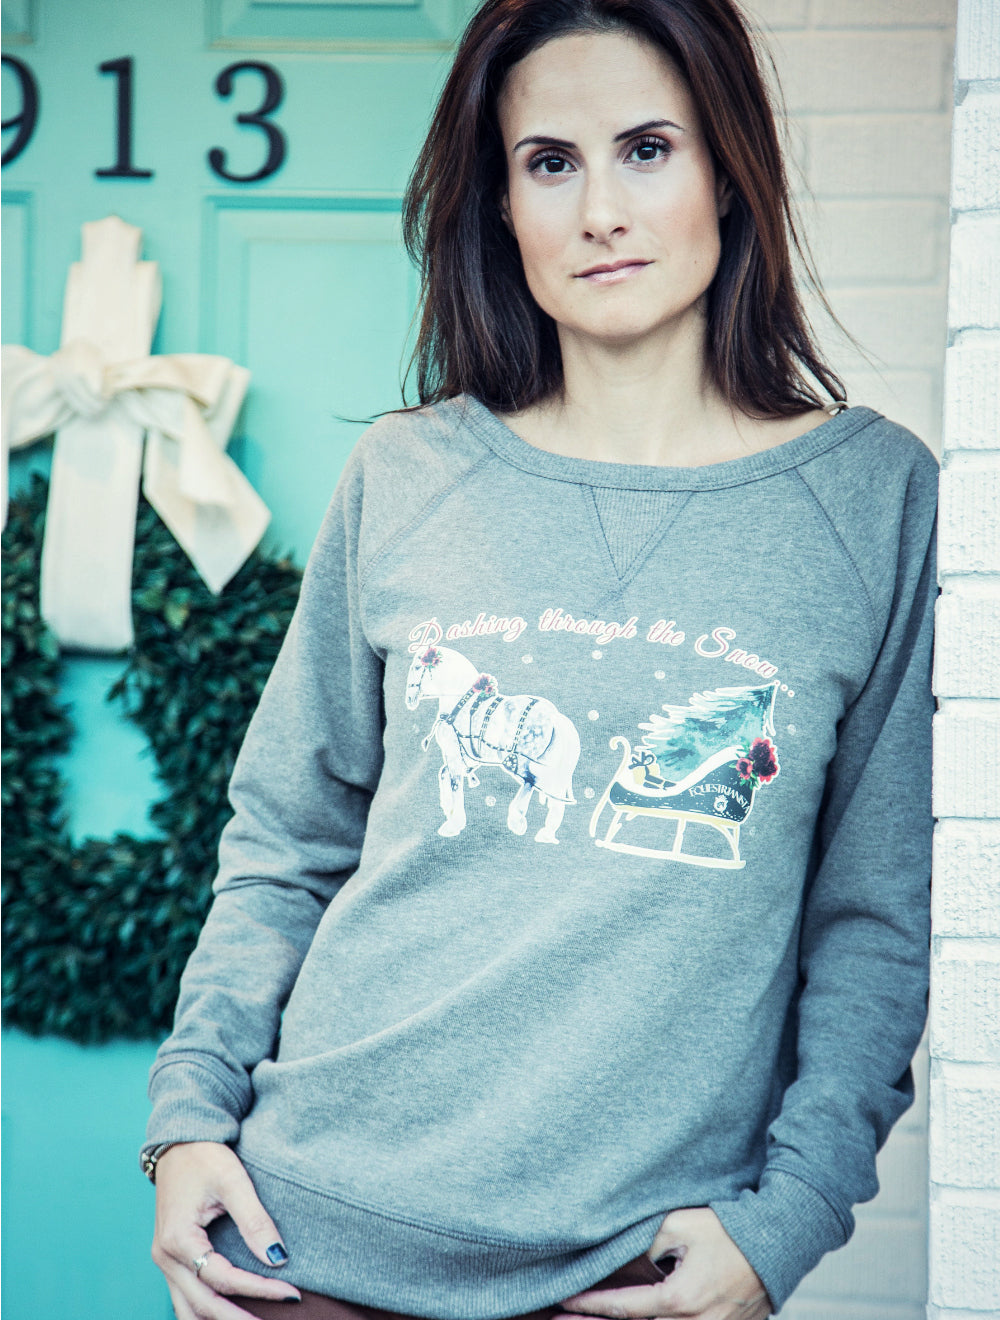 Equestrian Holiday Top by Equestrianista modeled by Horse Glam Equestrian Lifestyle Blogger.